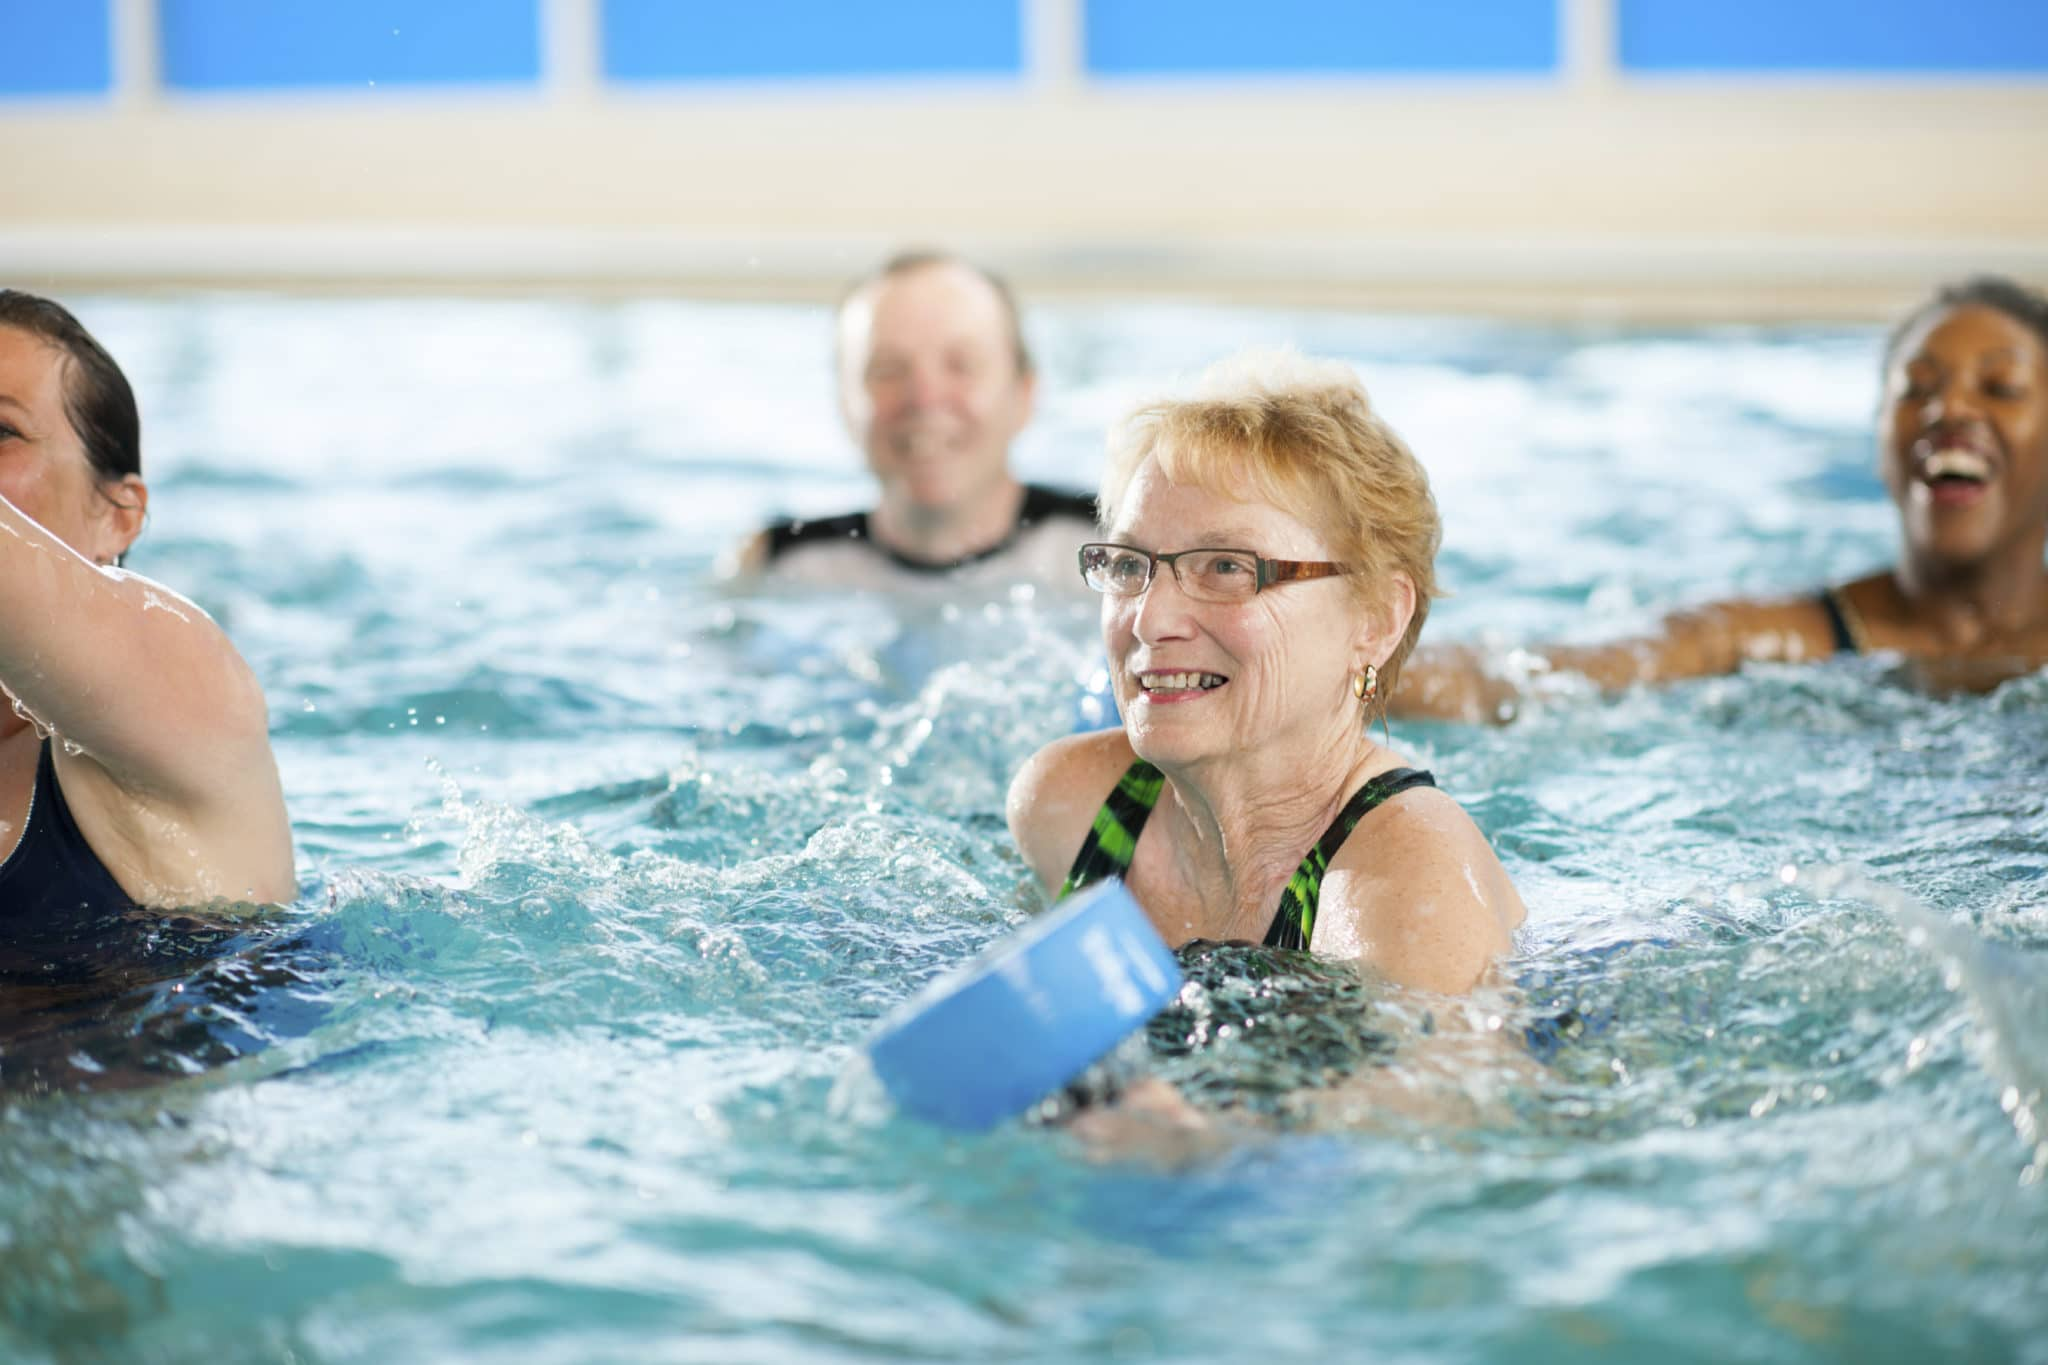 People doing exercises in a swimming pool